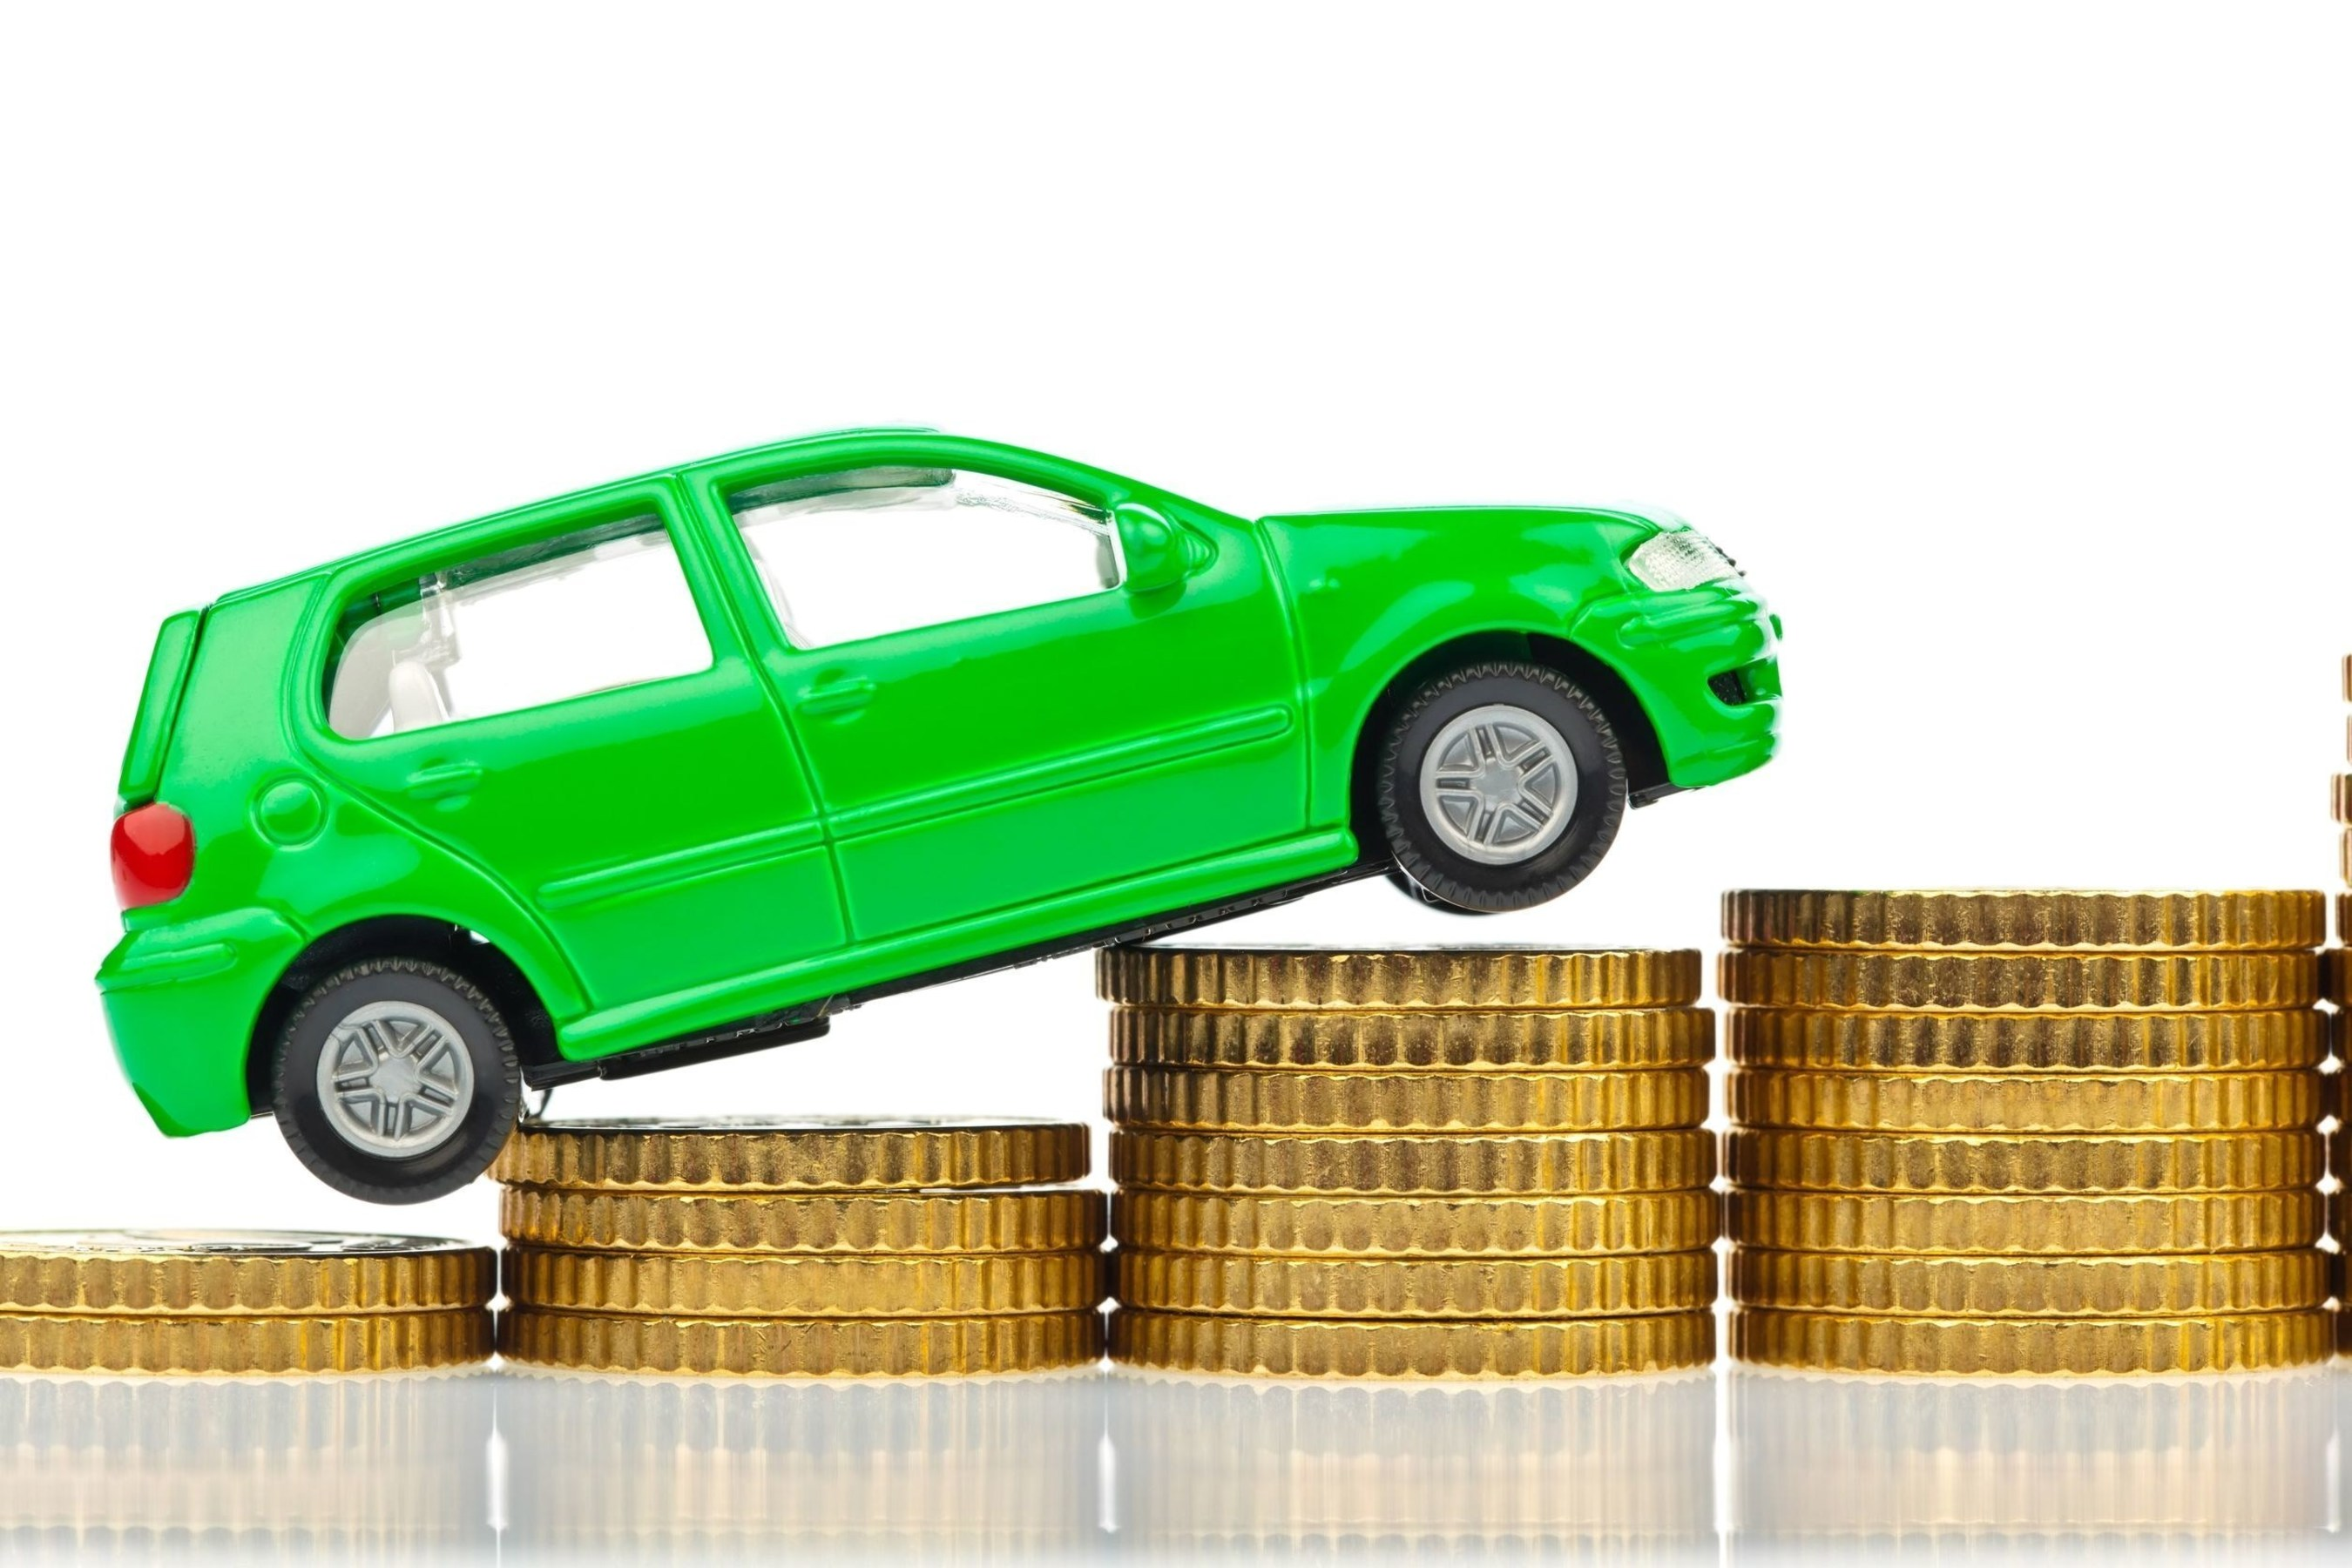 Auto Insurers Fight To Keep Michigan Tax Break 'Mistake' - Find Out More In A New Article!